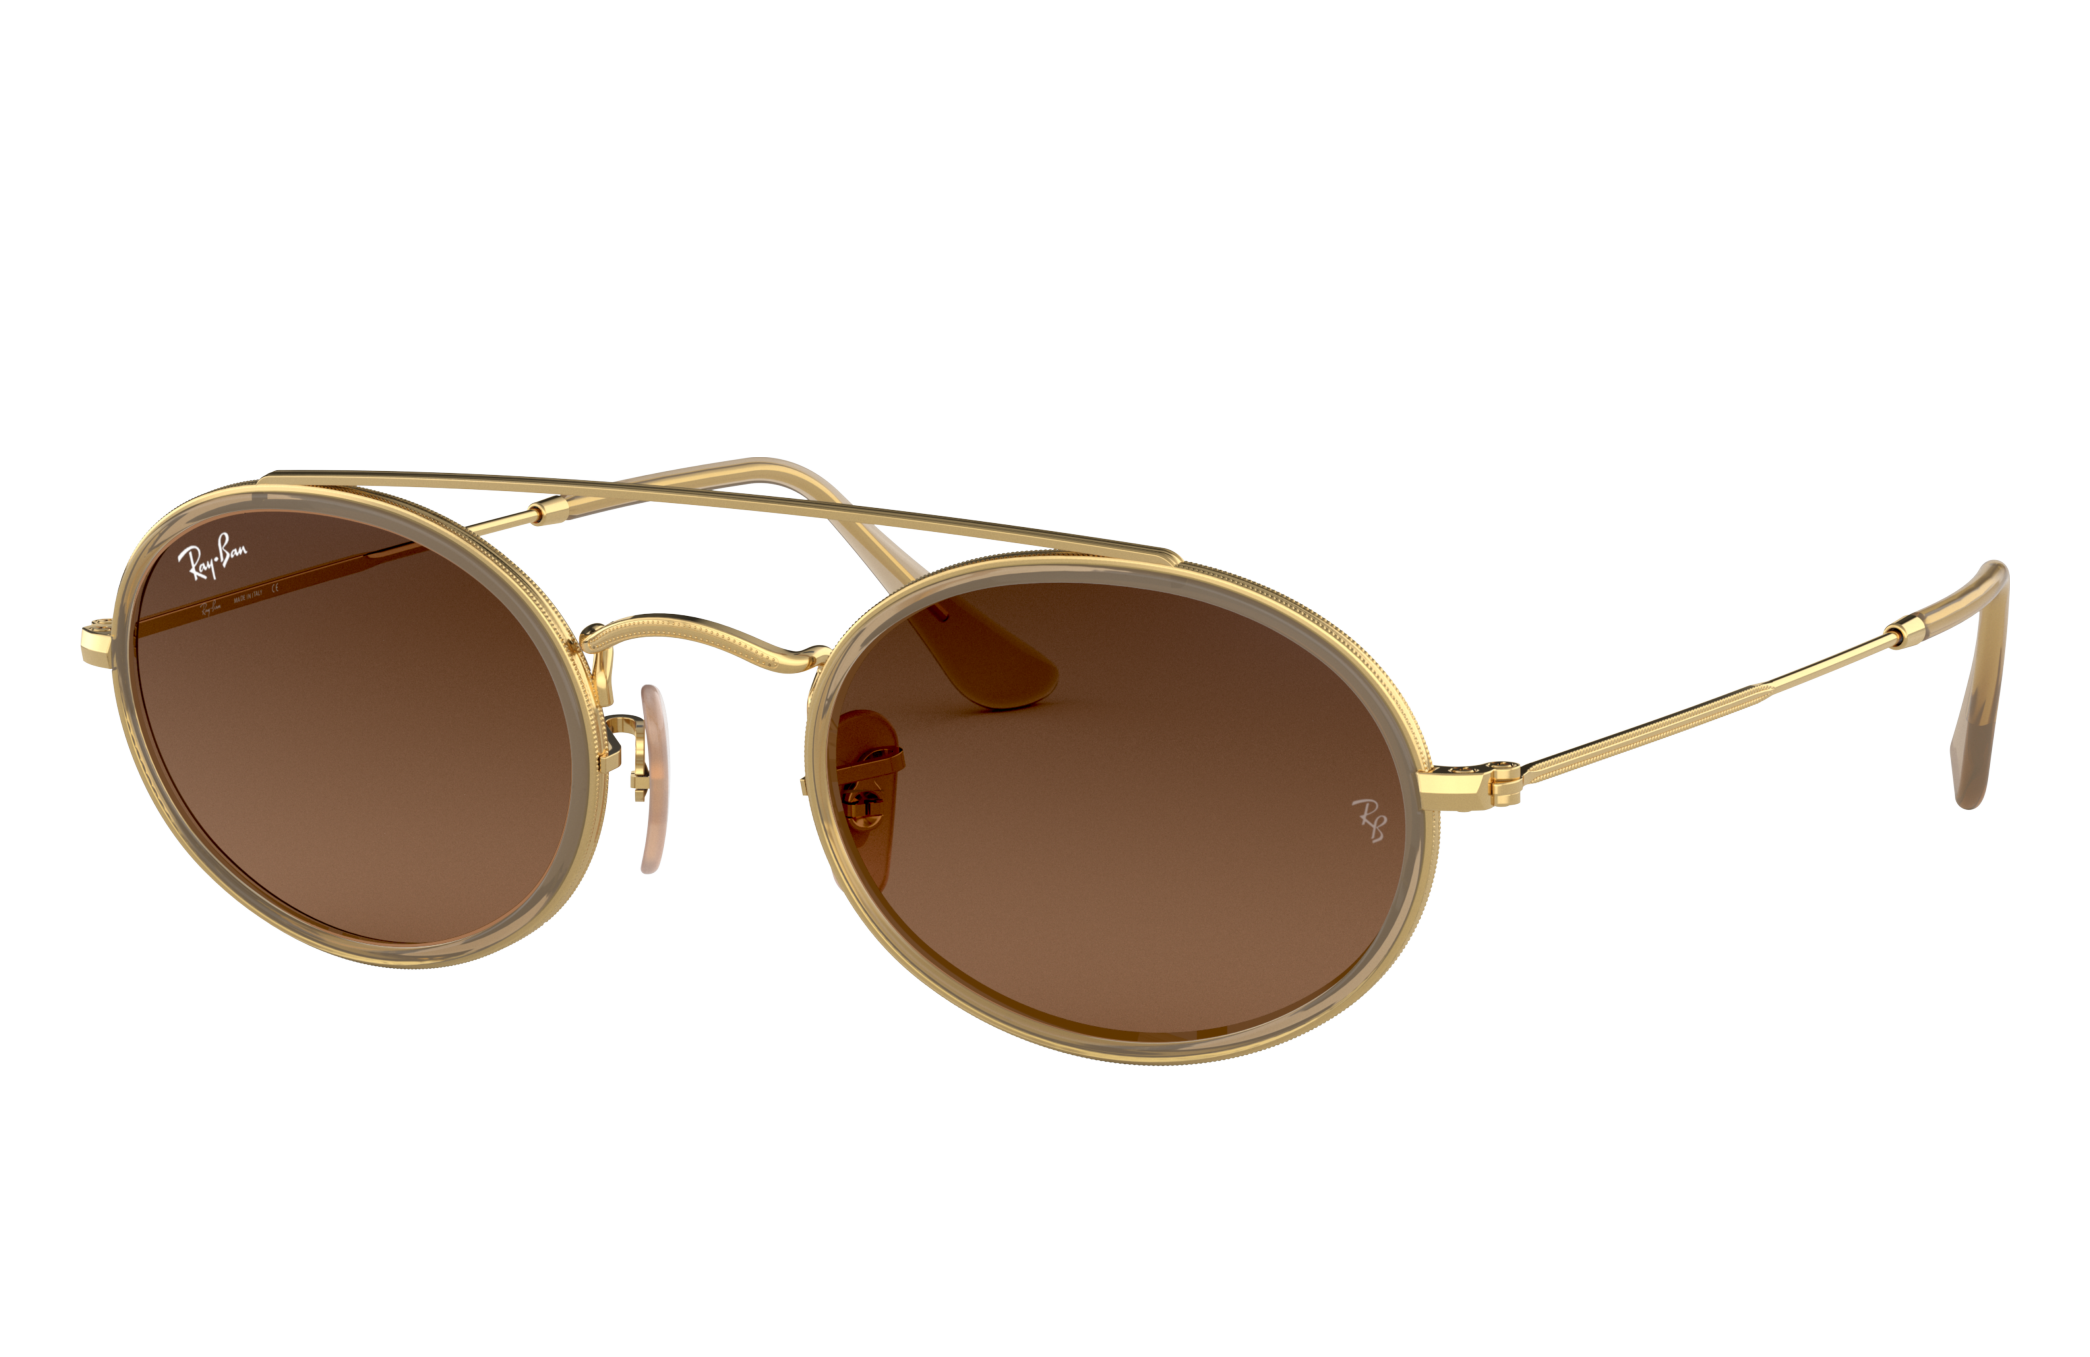 Ray-Ban Oval Double Bridge Gold, Brown Lenses - RB3847N